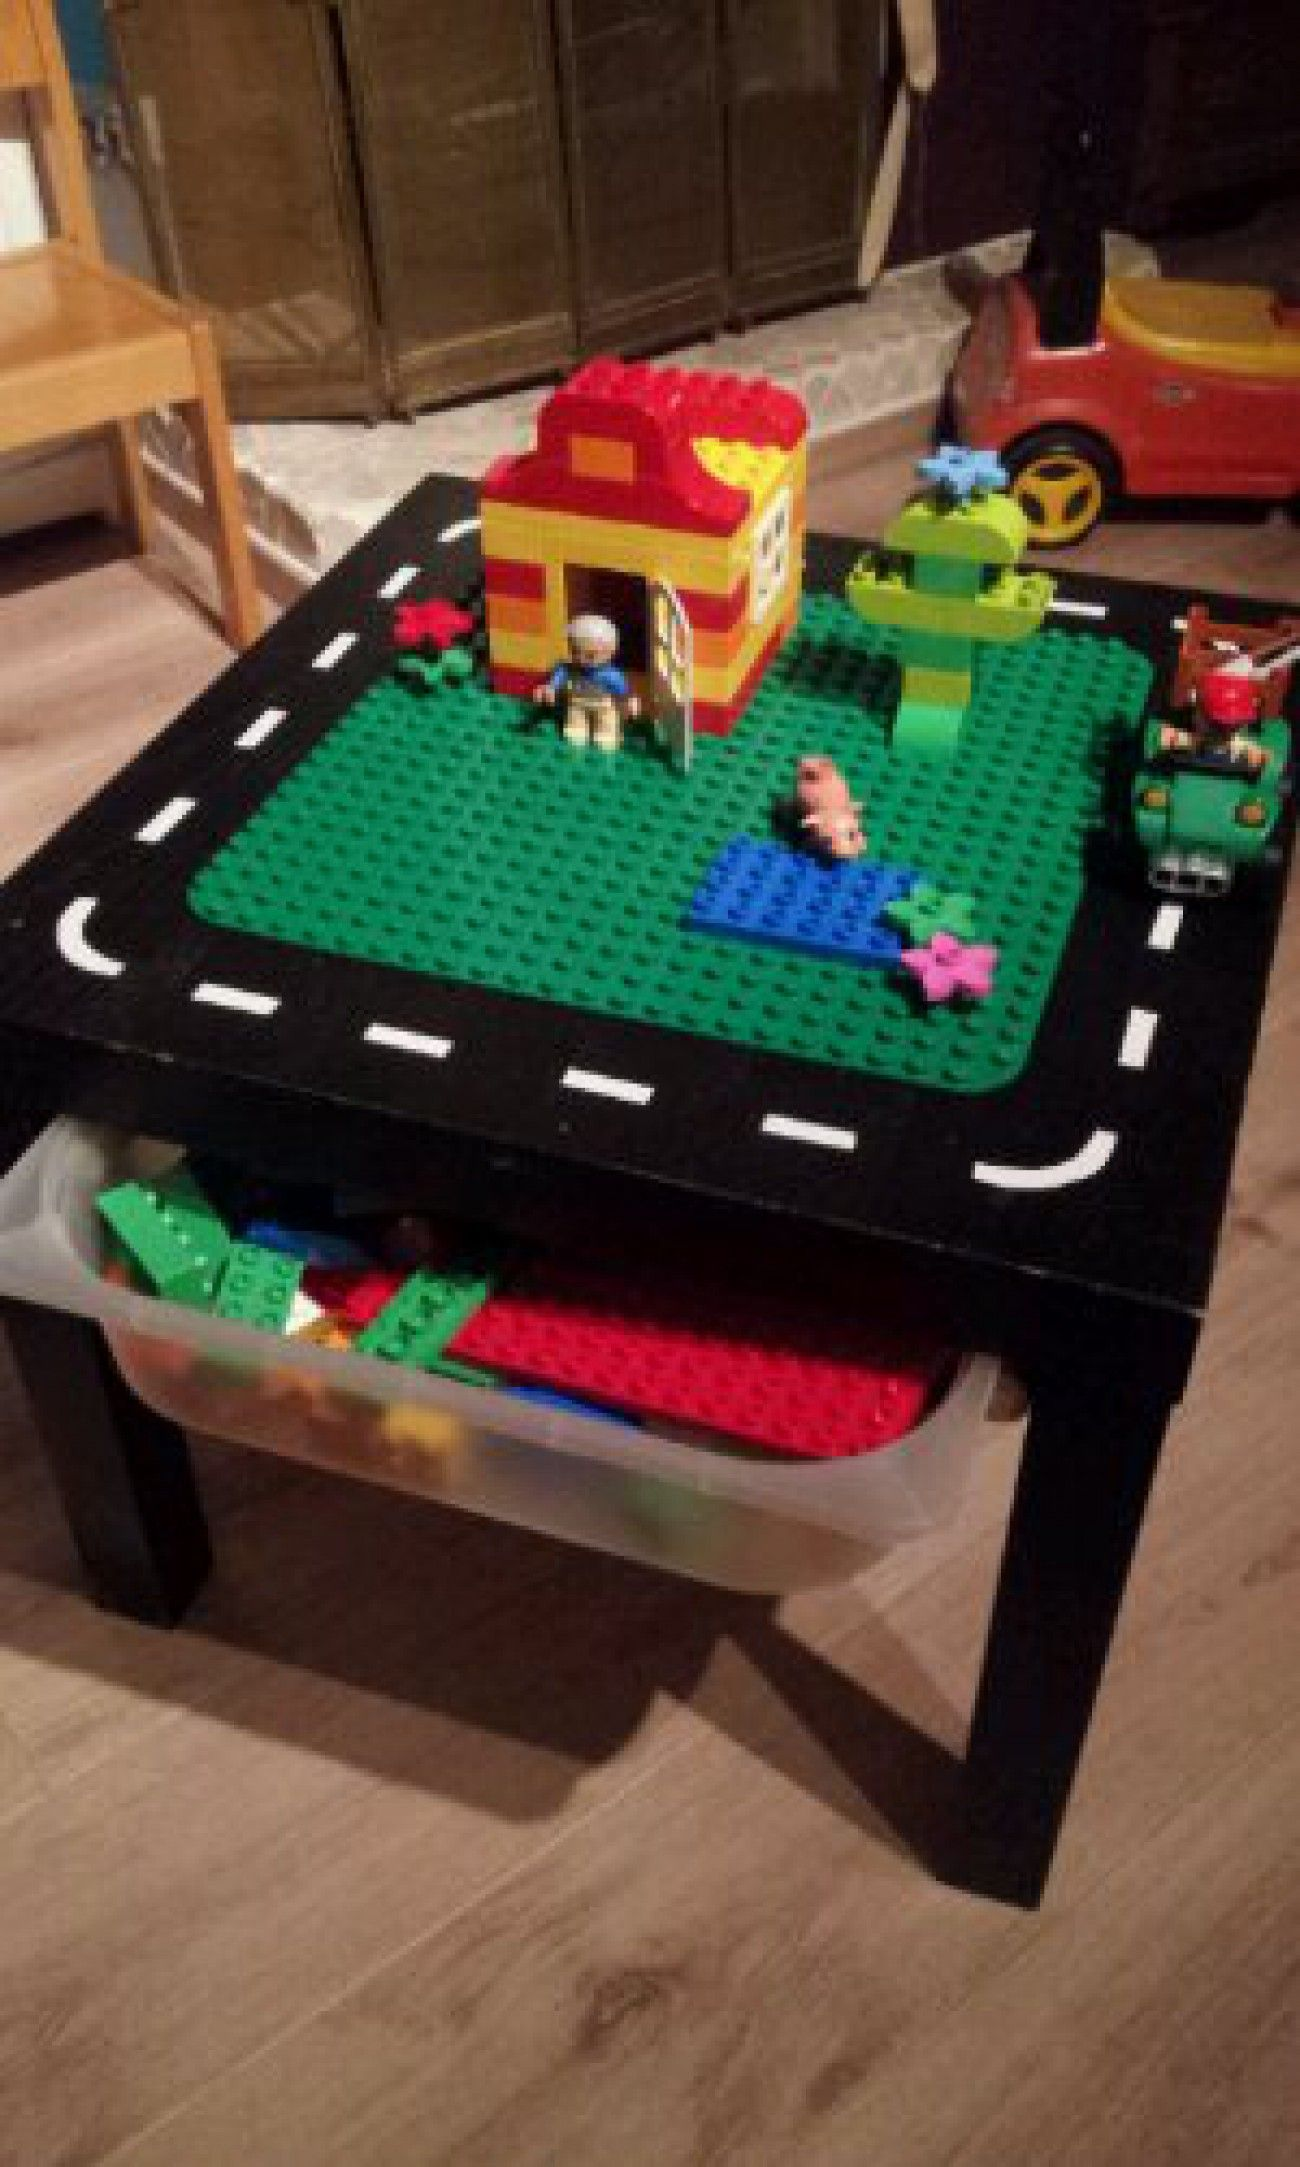 duplo tafel zelf maken van lack tafeltje en trofast opbergbak van ikea diy pinterest. Black Bedroom Furniture Sets. Home Design Ideas